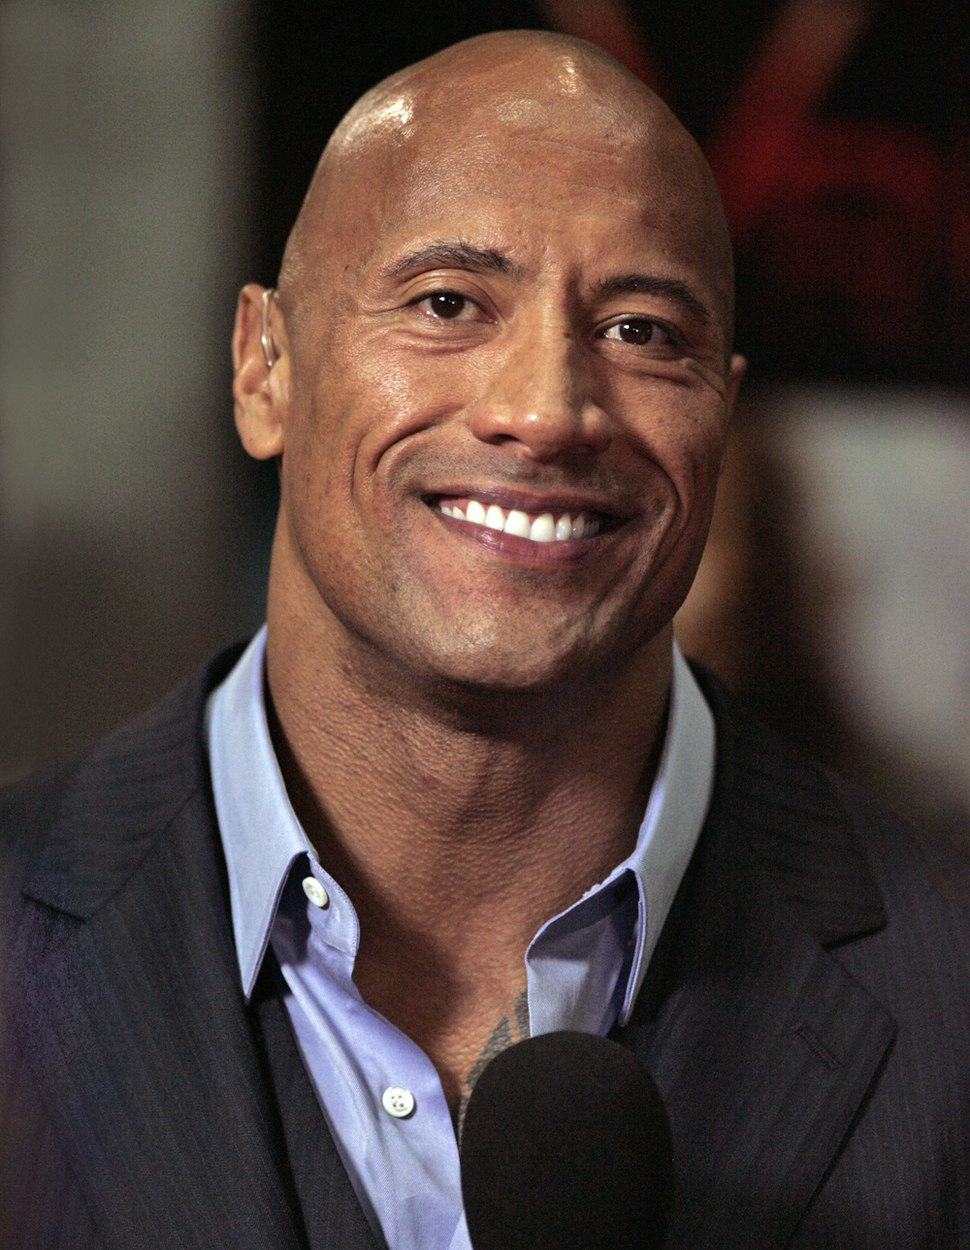 Dwayne Johnson 2, 2013